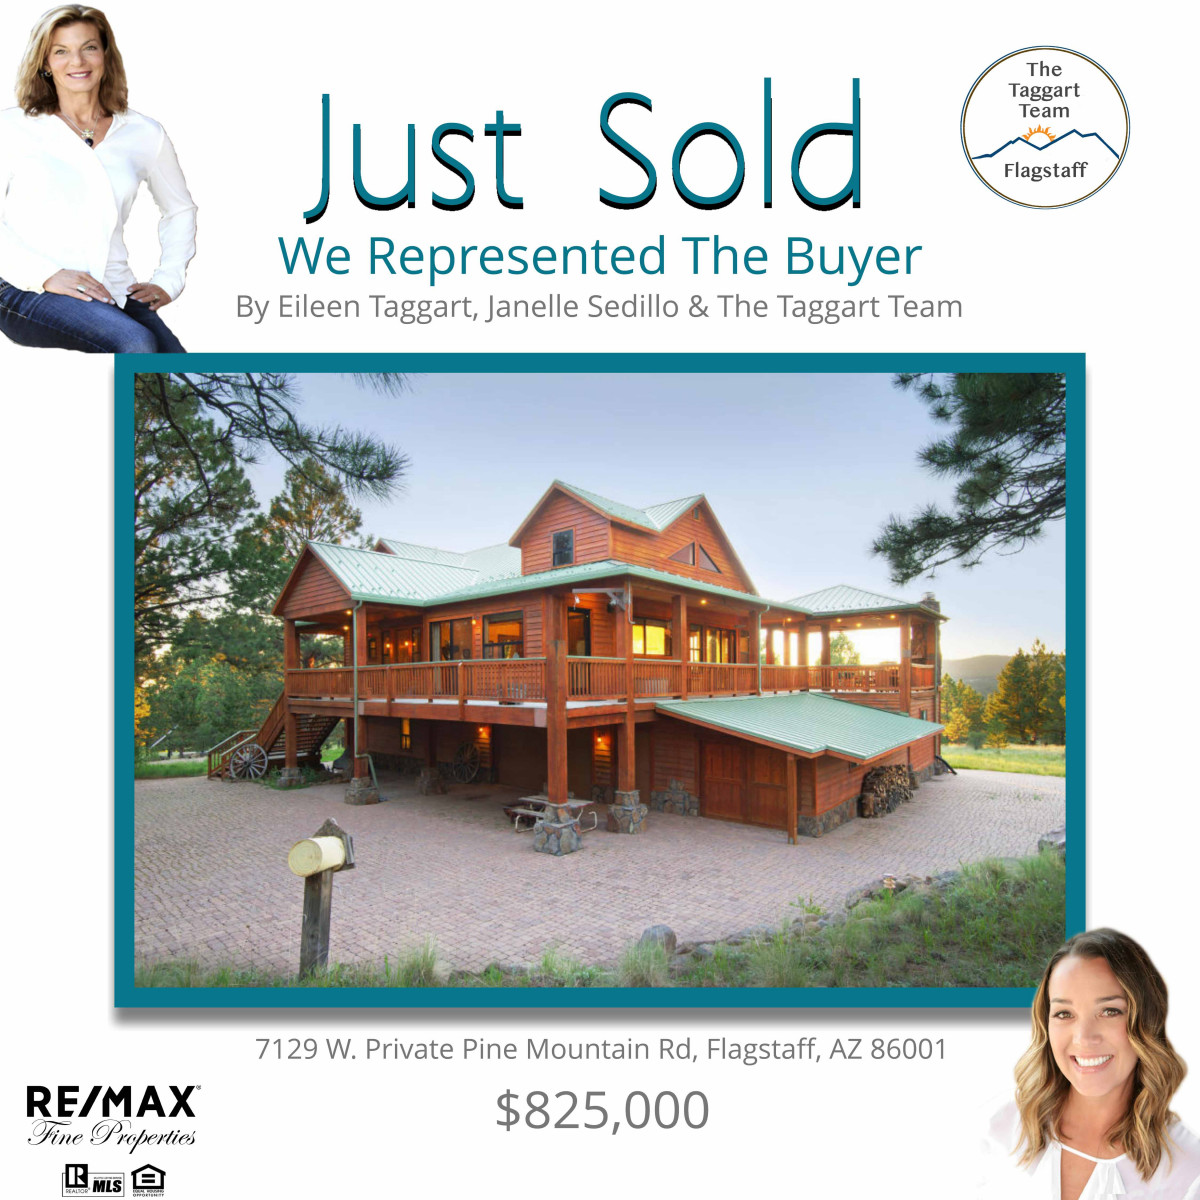 7129 W. Private Pine Mountain Rd. Just Sold